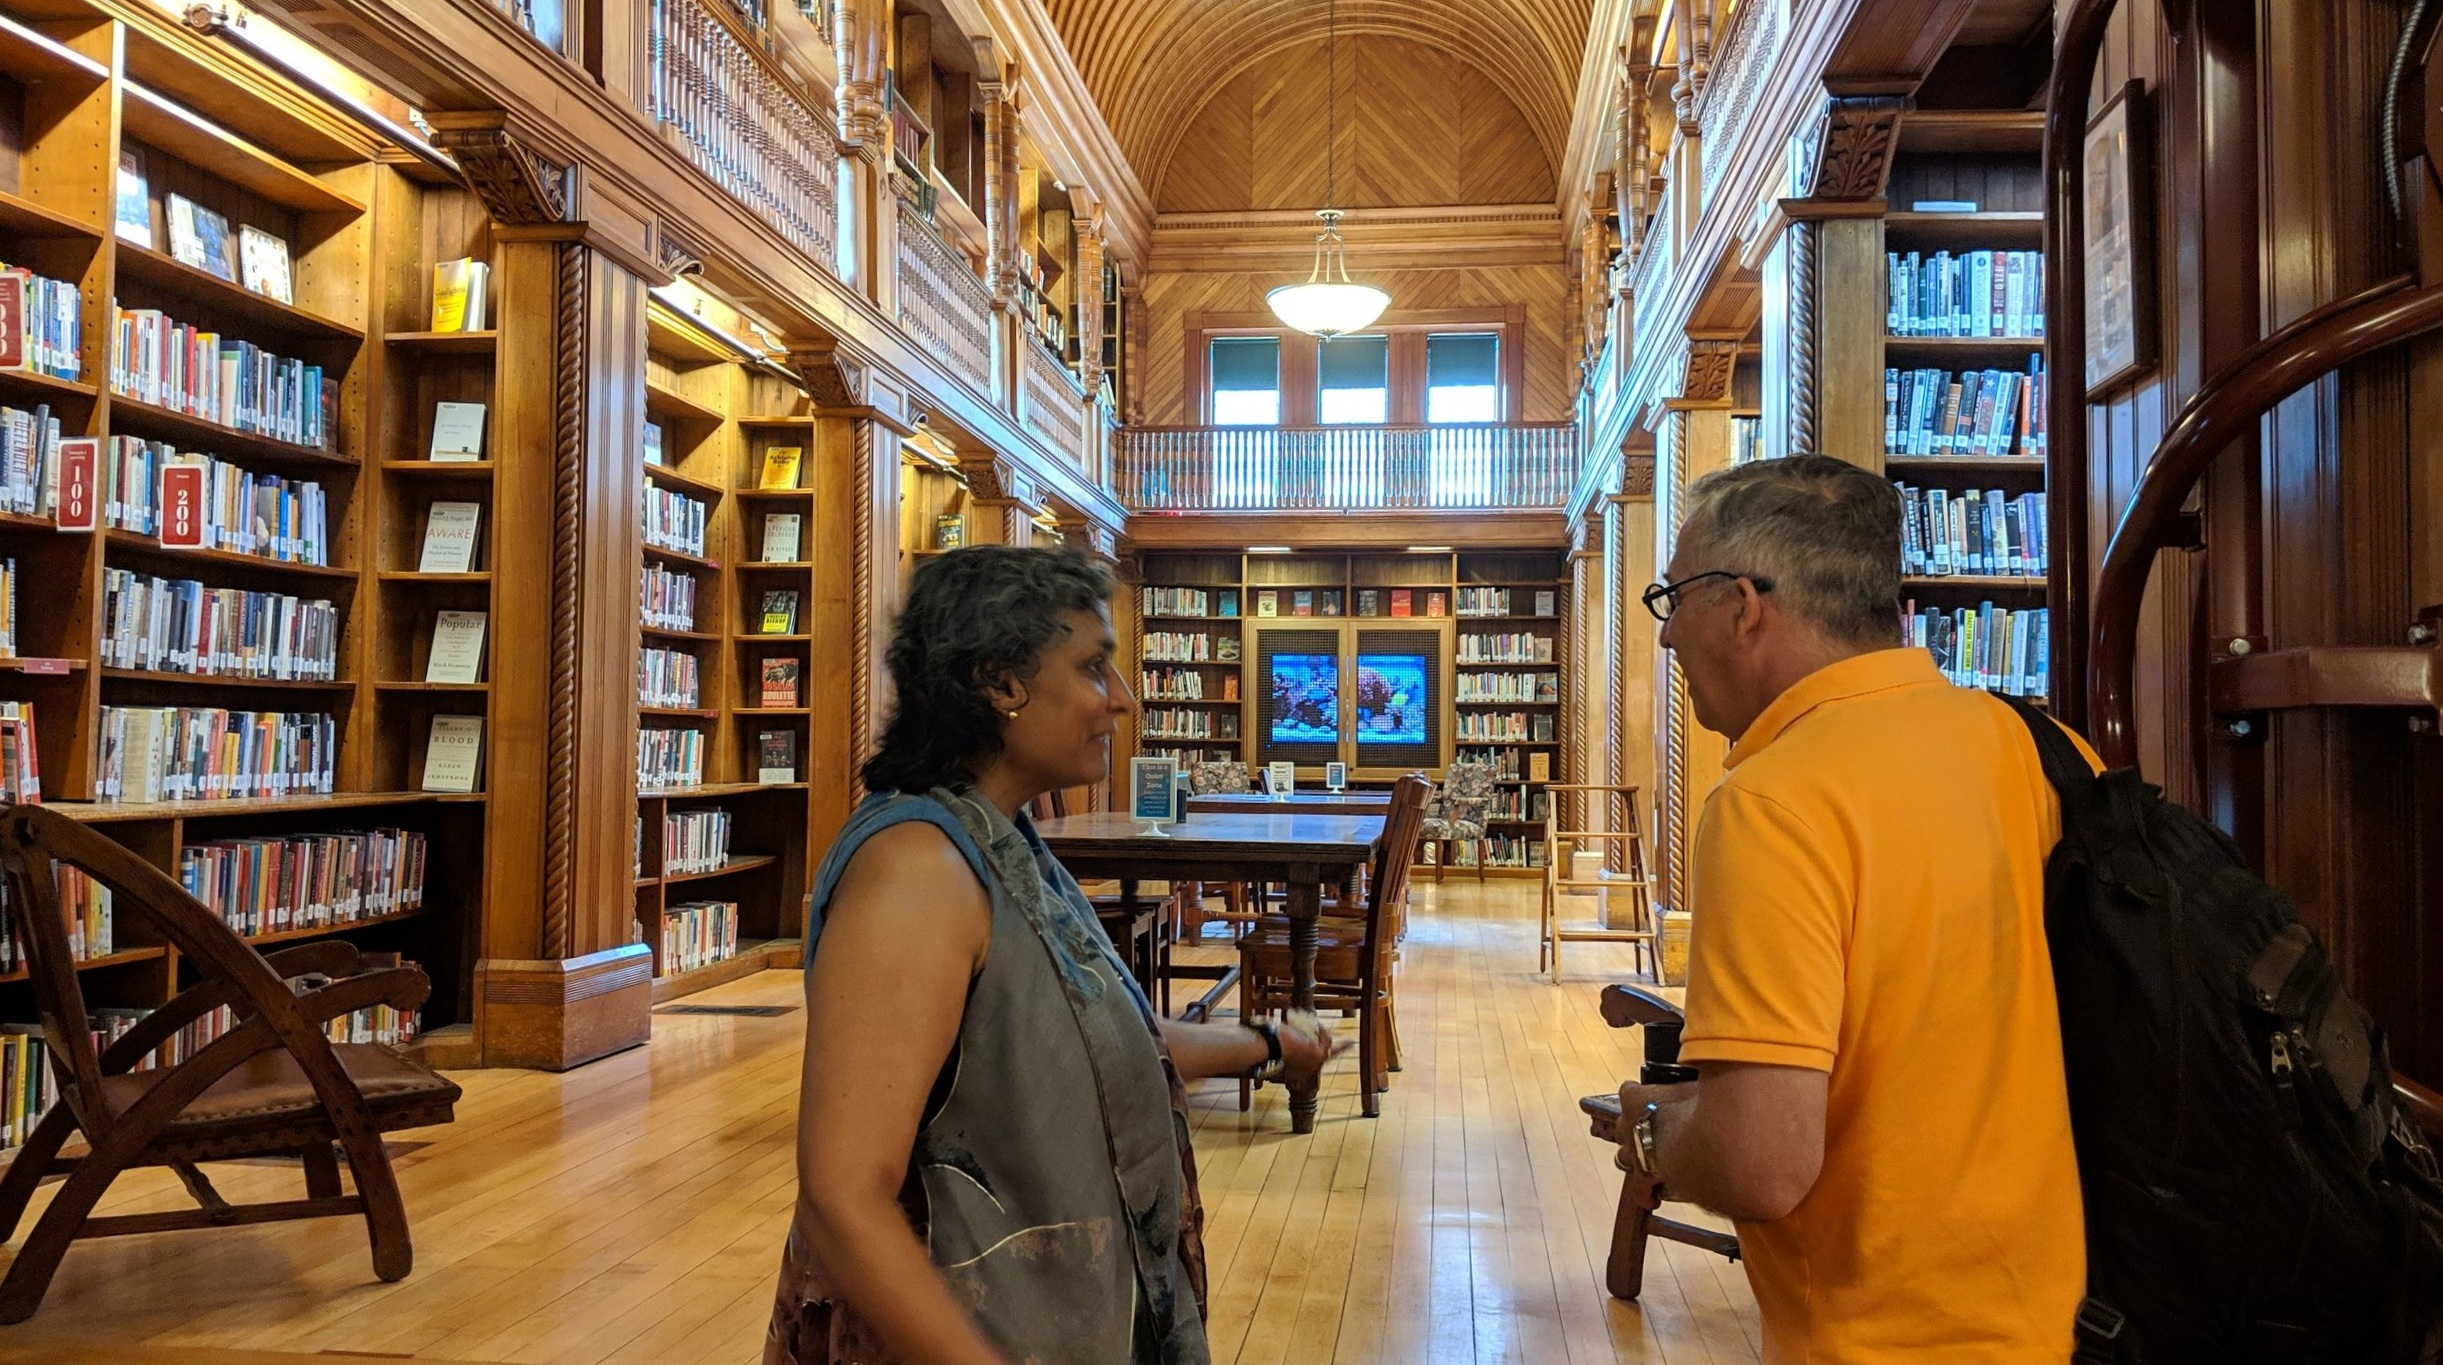 Looking into the beautiful reading room of the Ames Free Library in Easton.